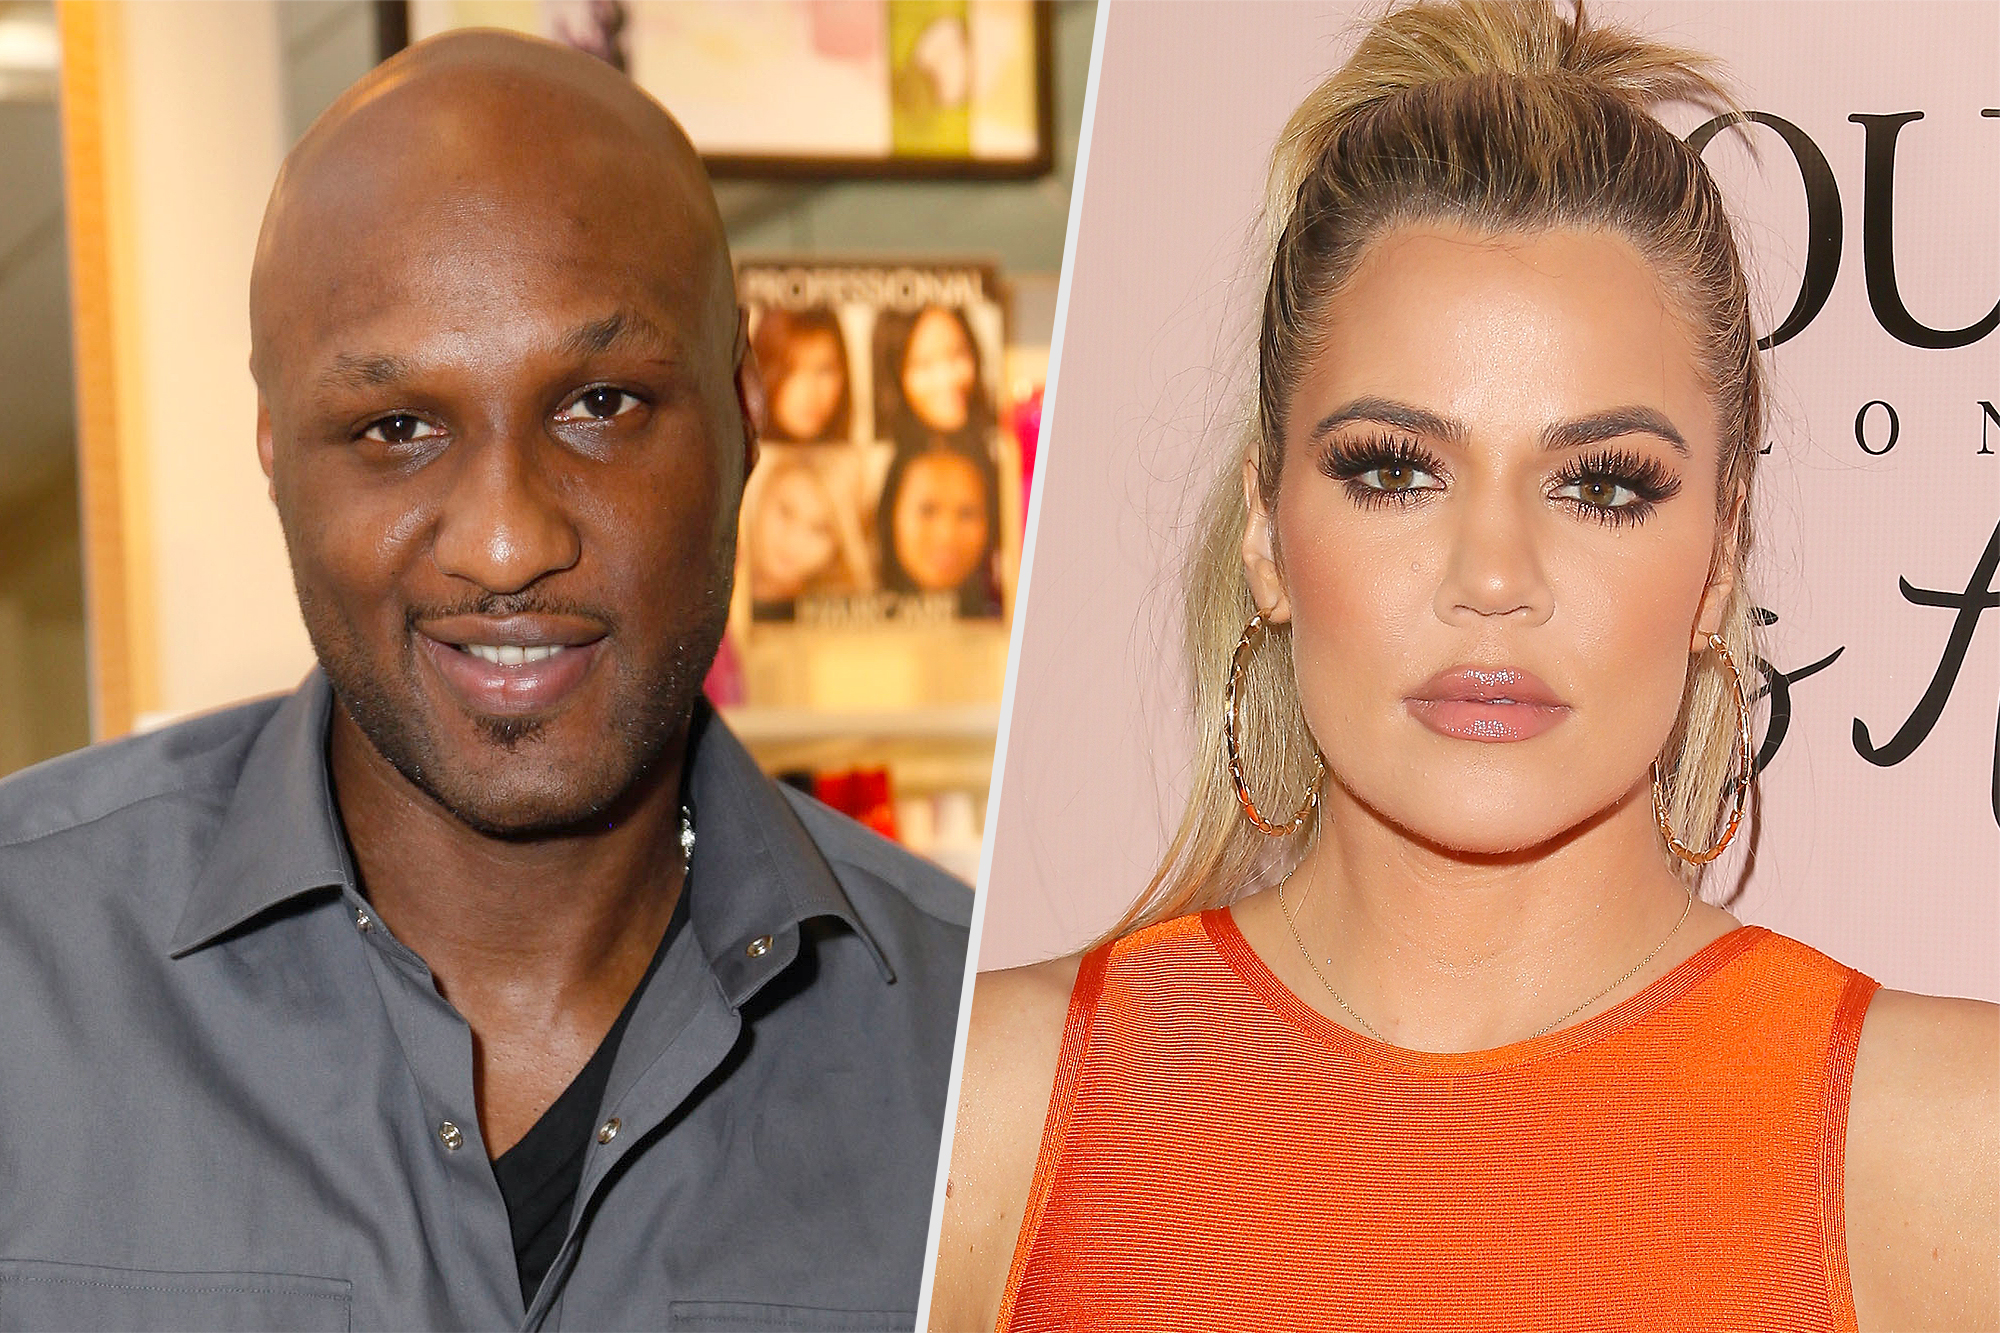 kuwk-khloe-kardashian-thinks-lamar-odom-is-using-her-for-attention-feels-betrayed-by-his-memoir